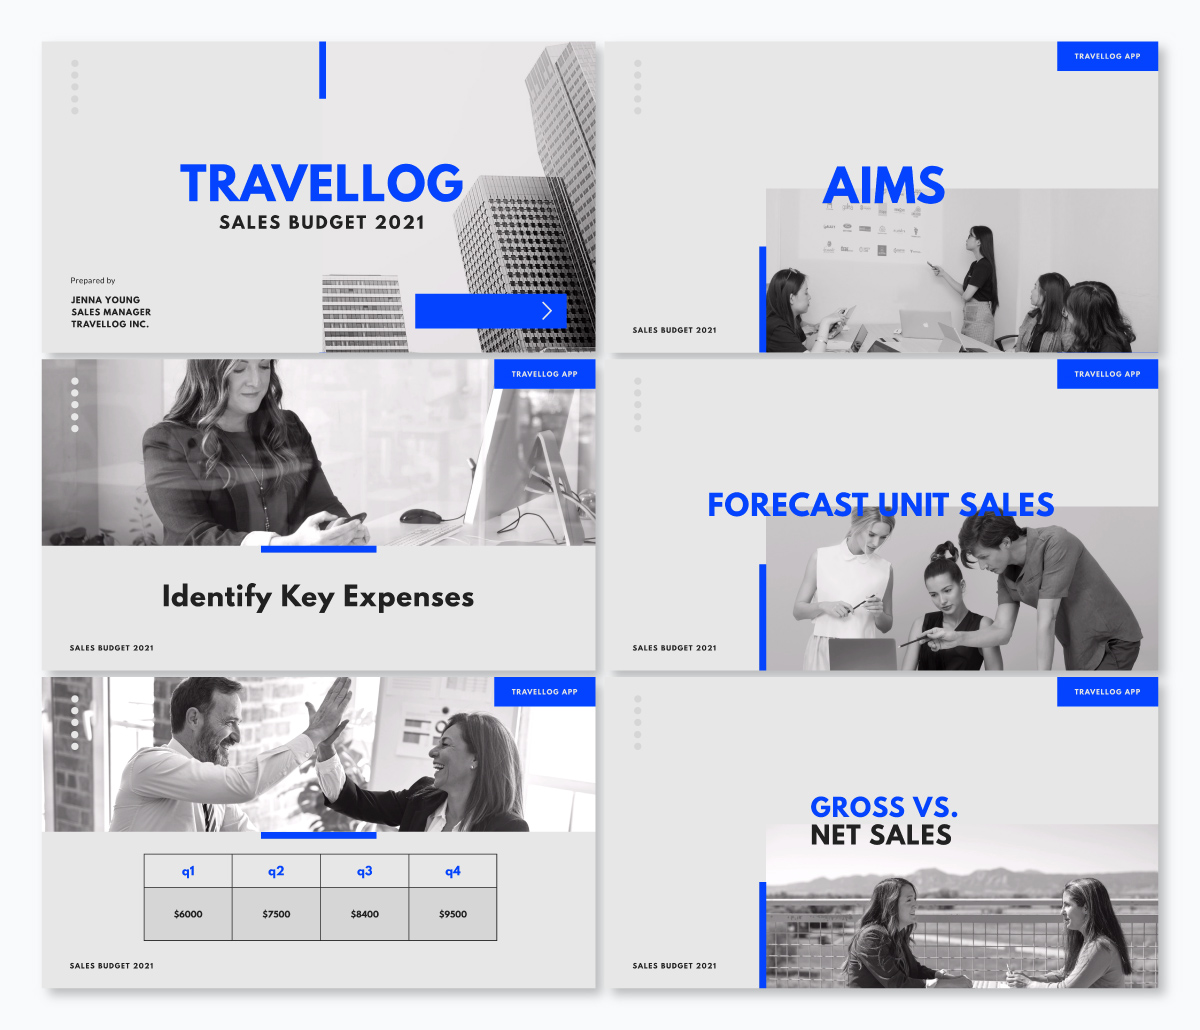 A sales budget presentation template available in Visme.